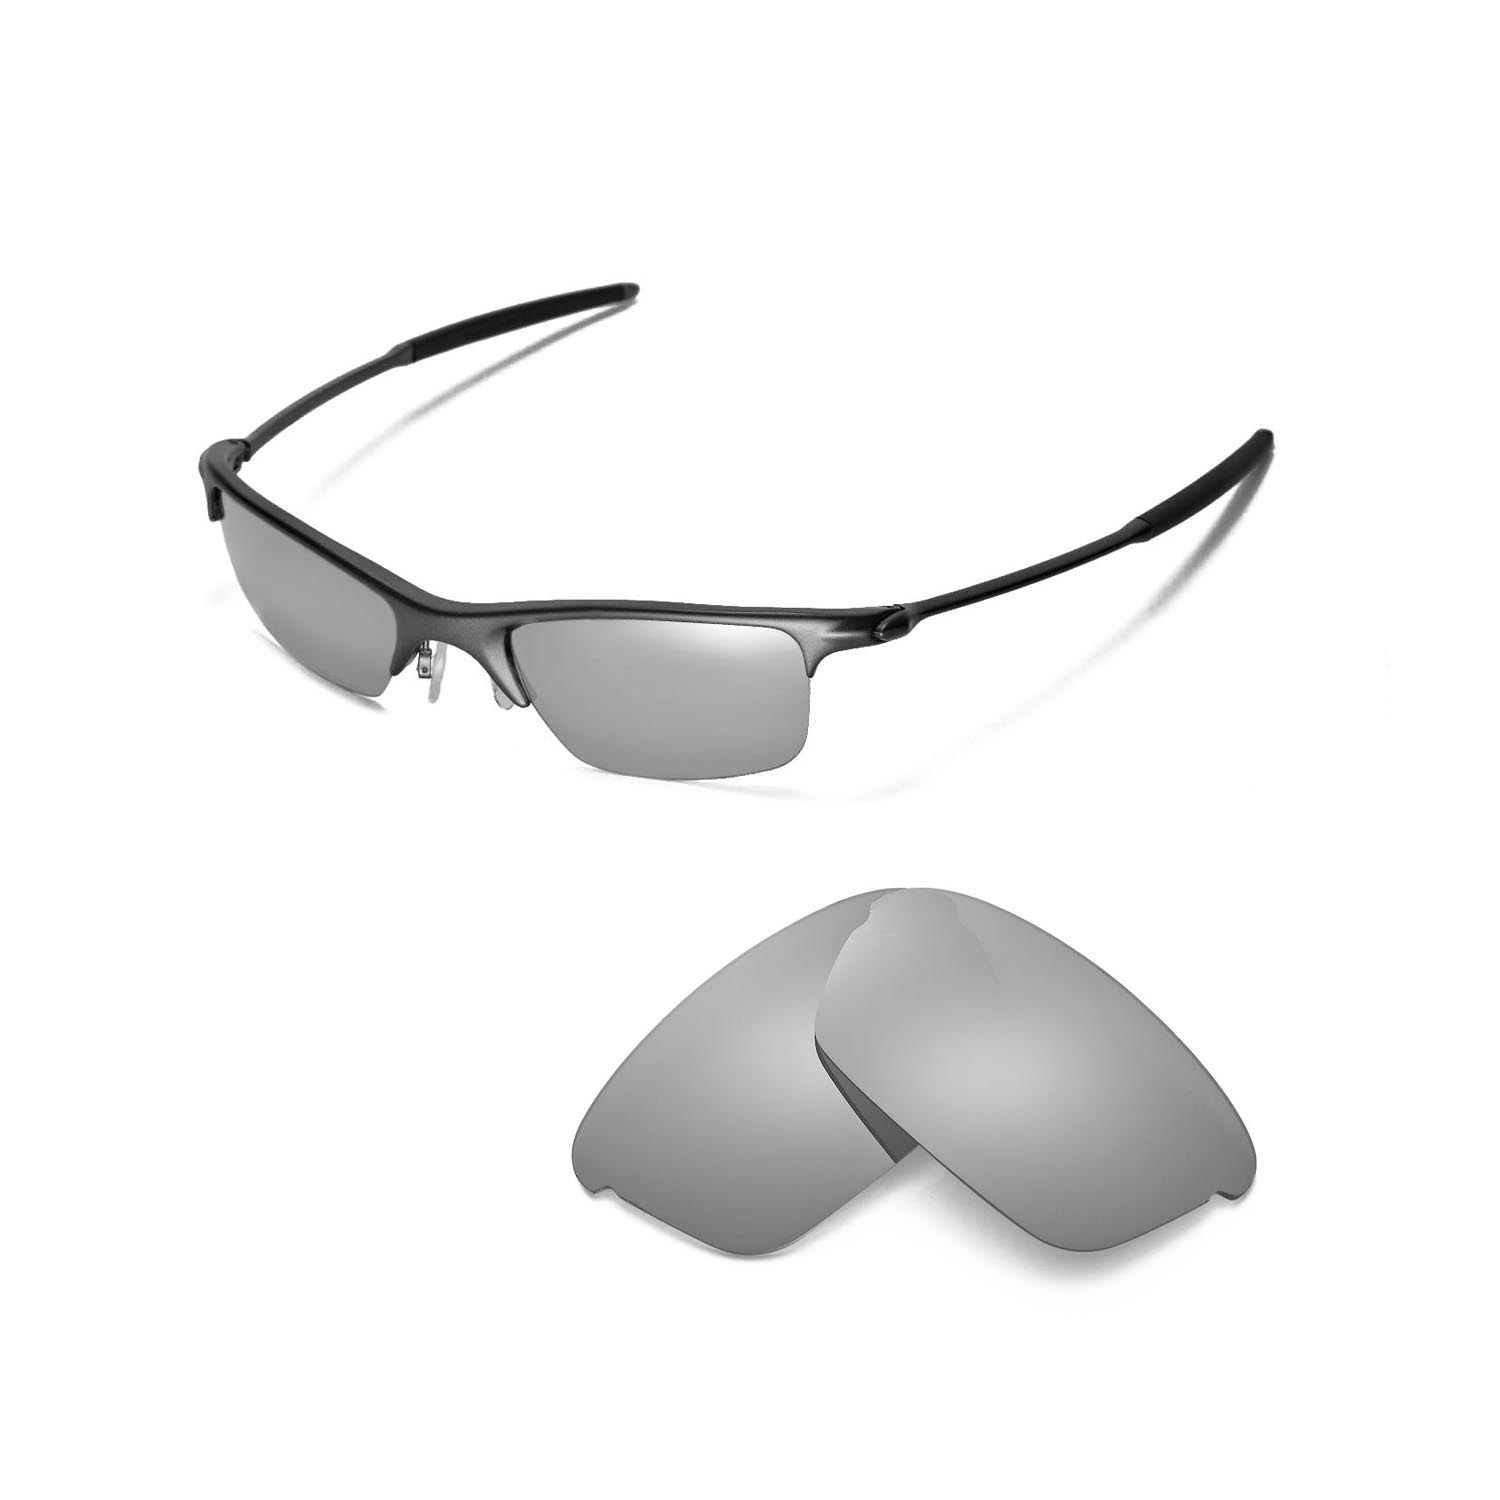 902e4ce3082ad Details about New Walleva Polarized Titanium Replacement Lenses For Oakley  Razrwire Sunglasses